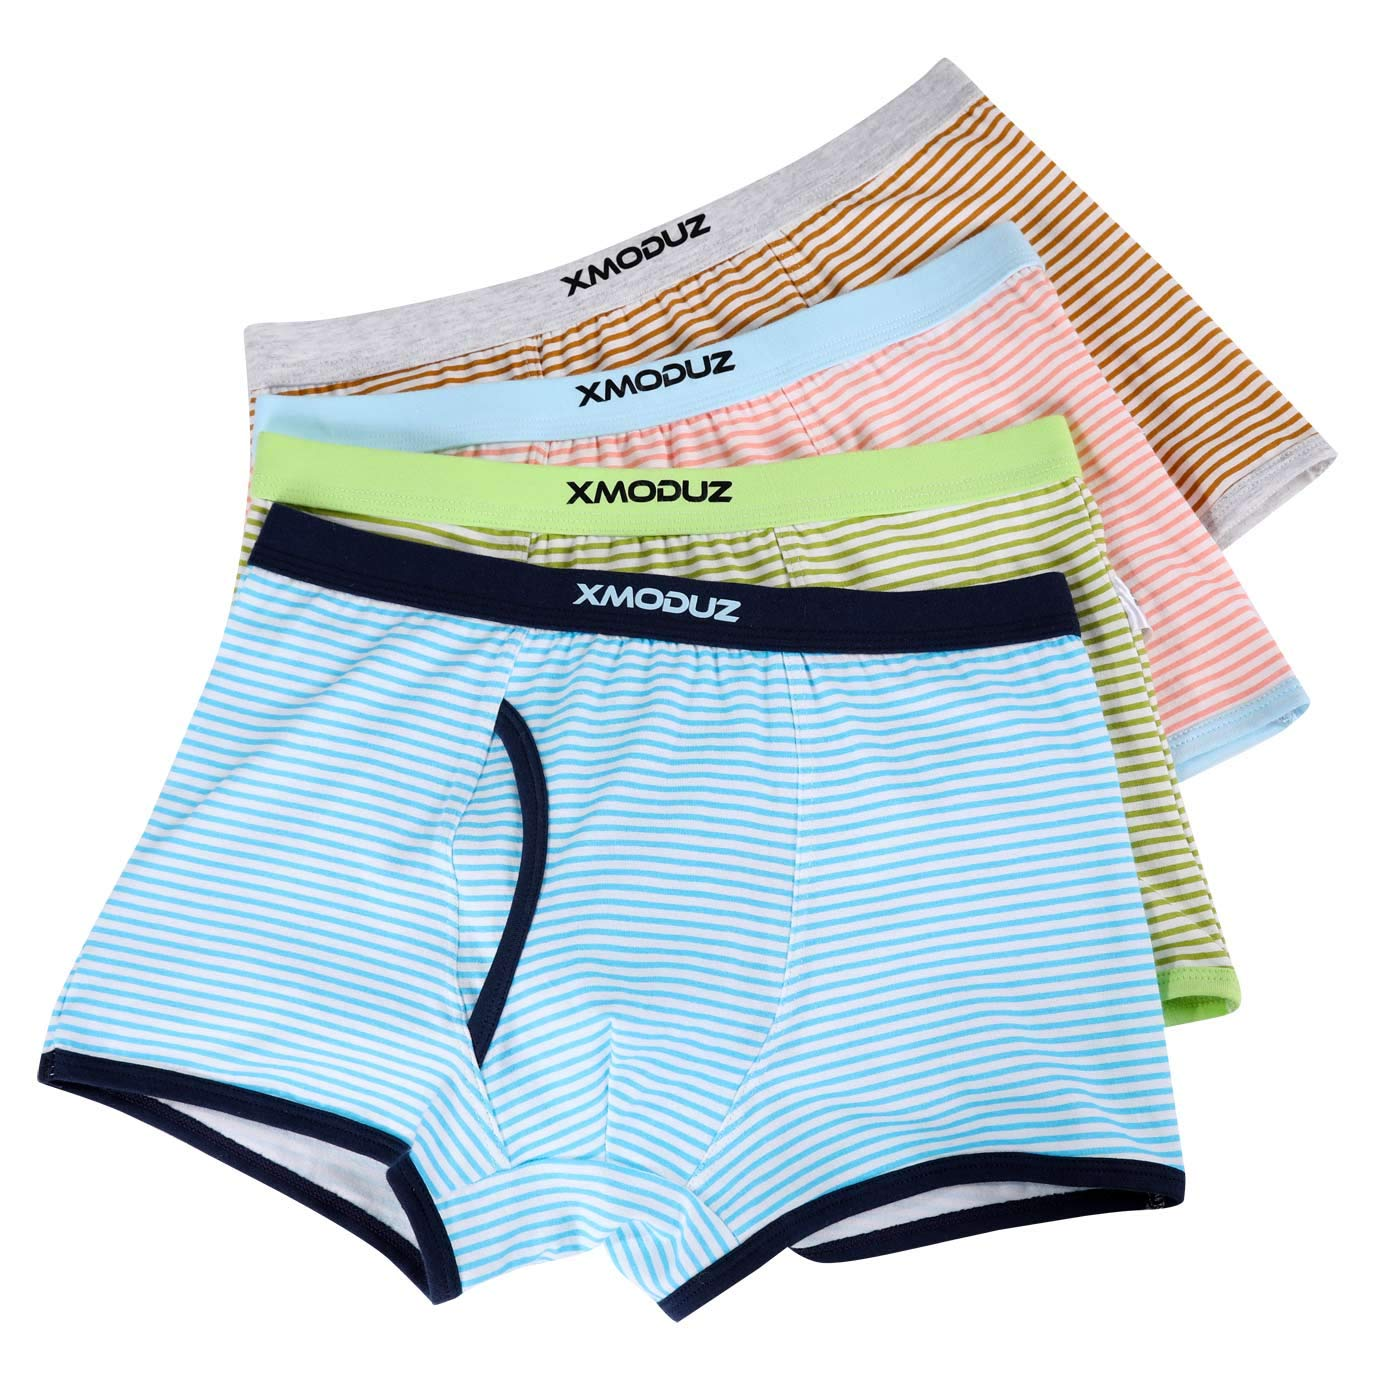 Xiaomaoduizhang Toddler Boys Briefs Value 4-Pack Underwear Percy Teens Basic Classic Underwear Stripe 120cm by Xiaomaoduizhang (Image #1)